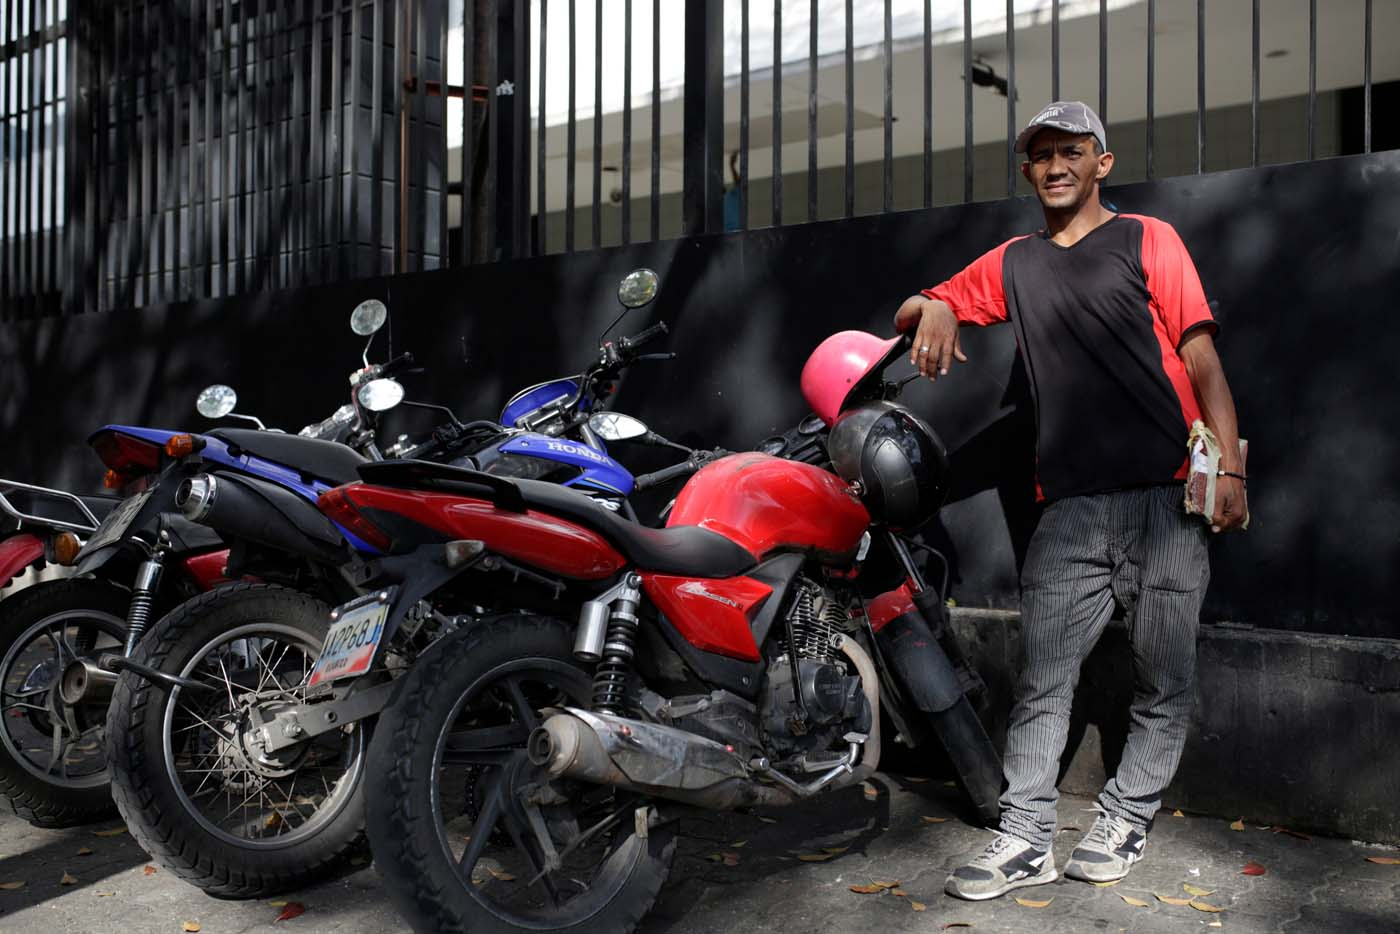 Denny Benitez looks after motorbikes at Plaza Brion square, in Caracas, Venezuela February 23, 2017. Picture taken February 23, 2017. REUTERS/Marco Bello